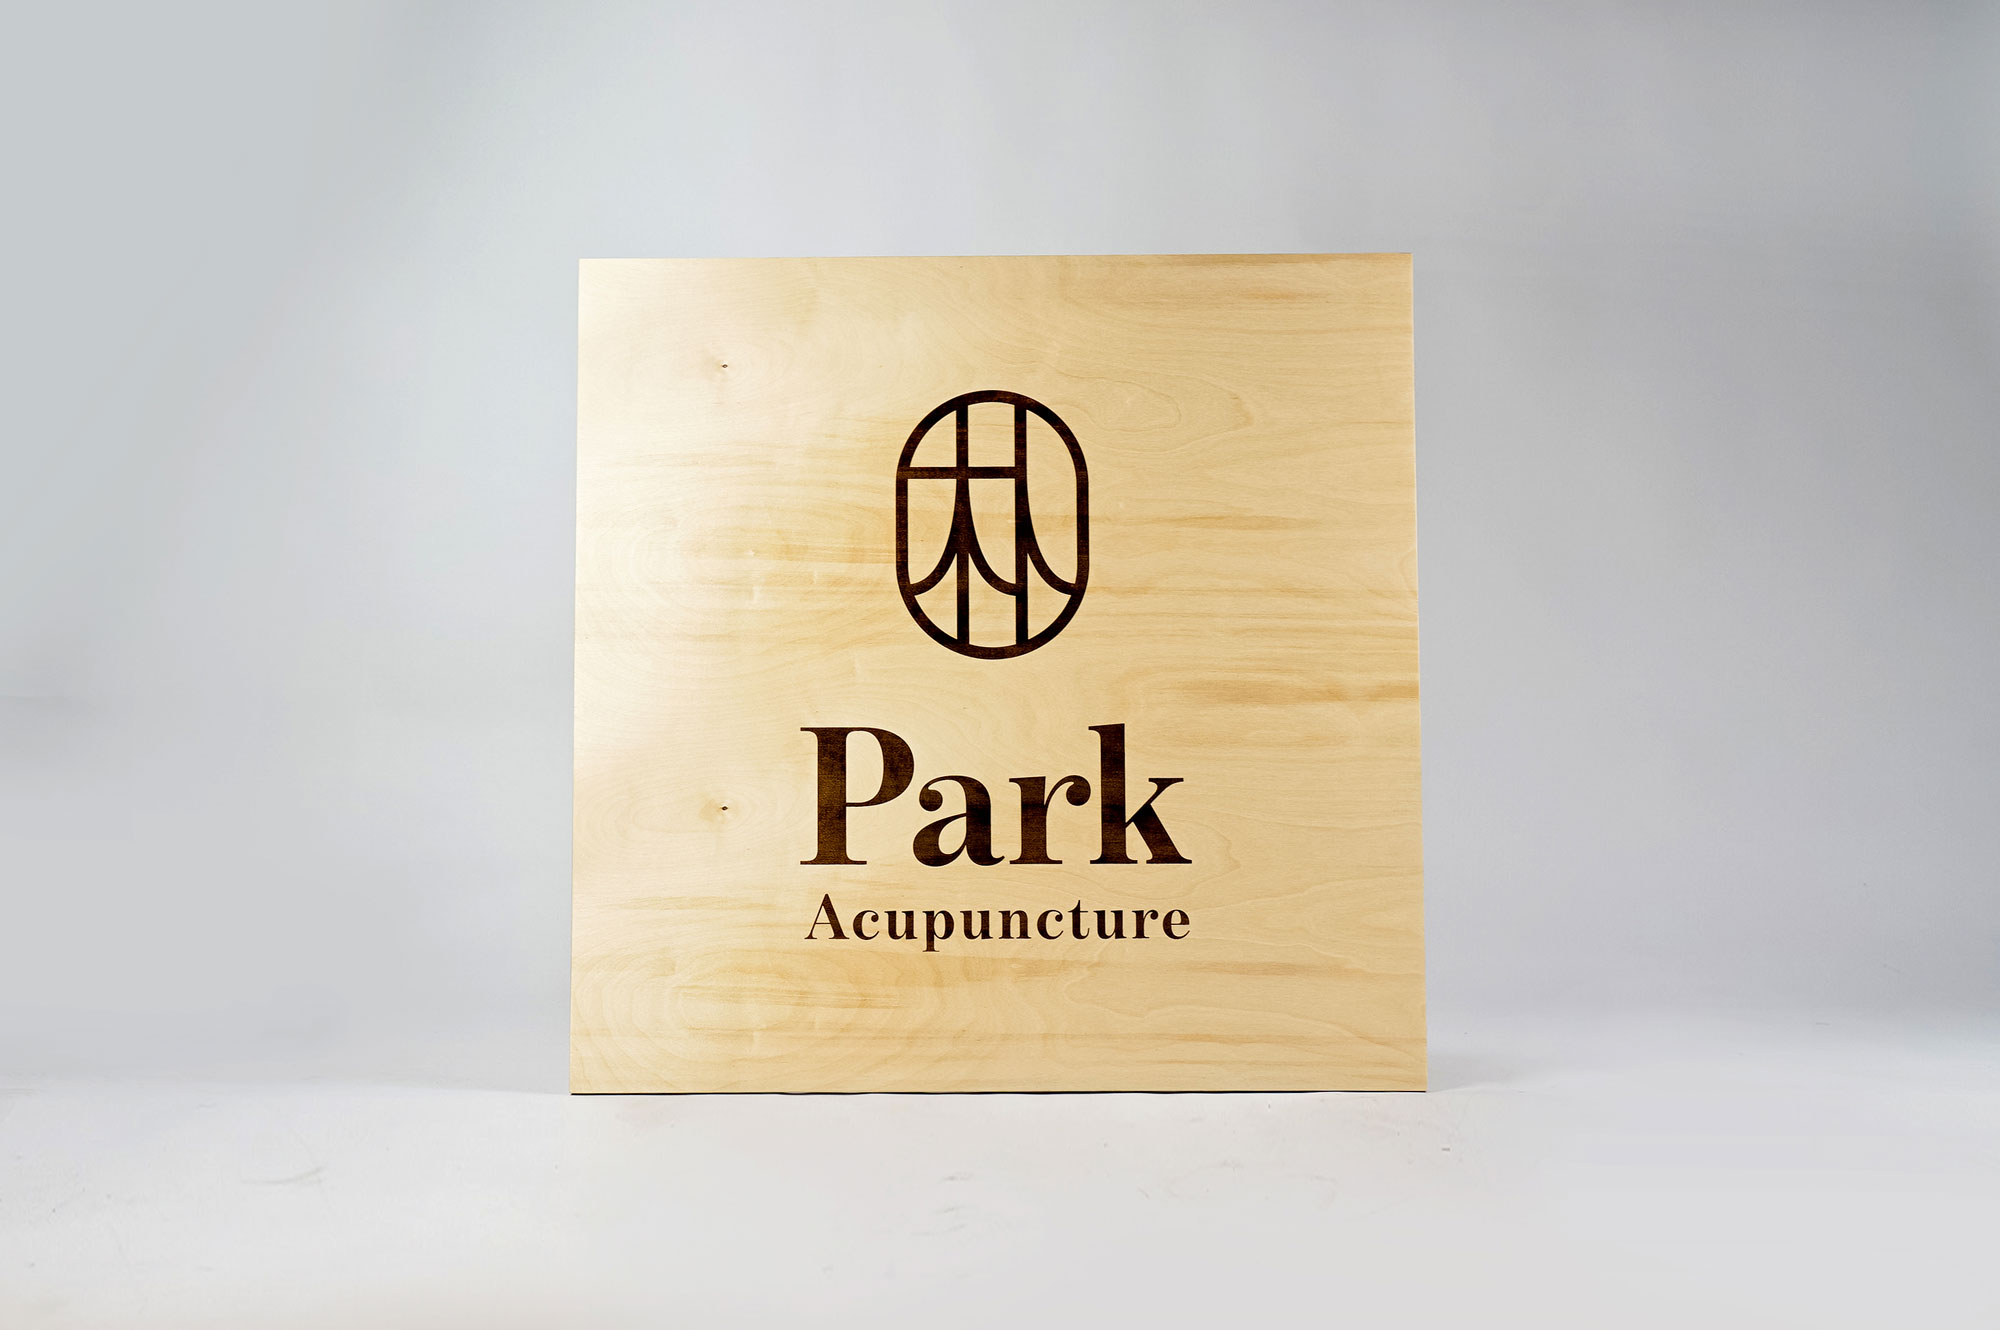 Laser etched/engraved square plywood sign for Park Acupuncture, an acupuncture clinic in Westwood, NJ.